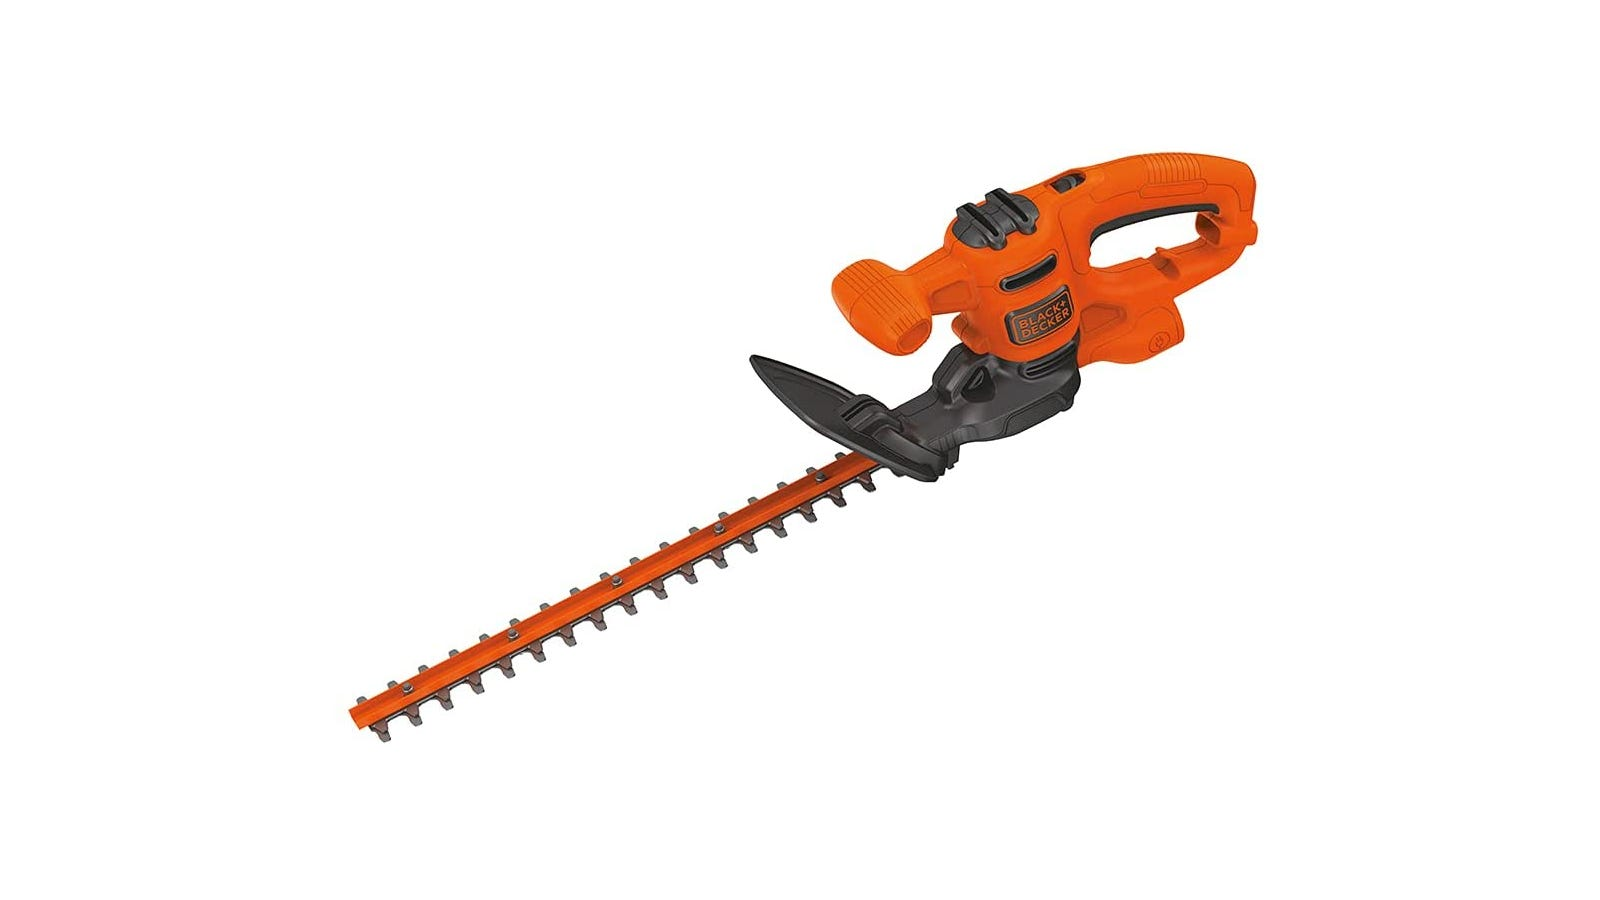 Orange and black electric corded hedge trimmer with 3.2-amp motor and 17-inch dual-action blade